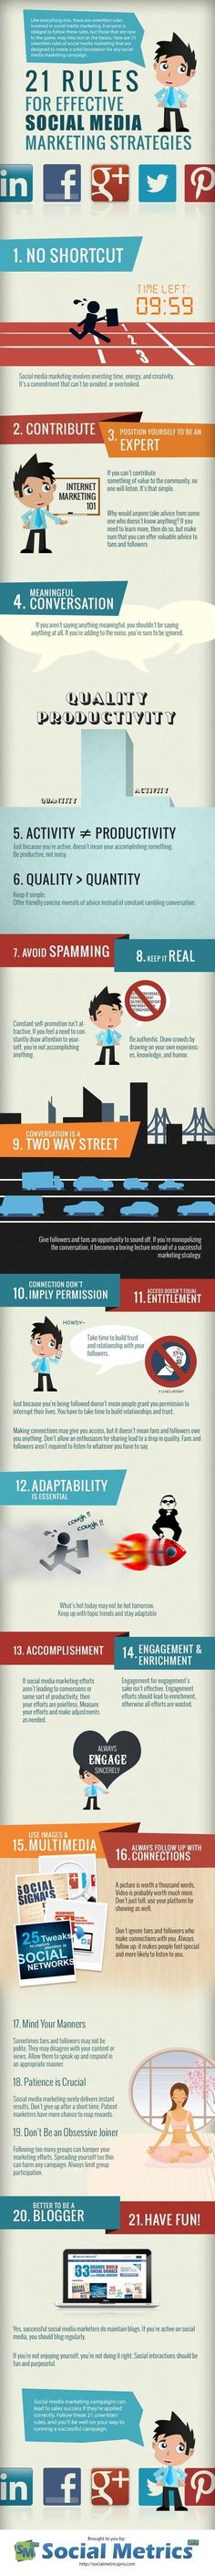 "Social Media Marketing Strategies- Infographic. ""Be productive, not noisy"""